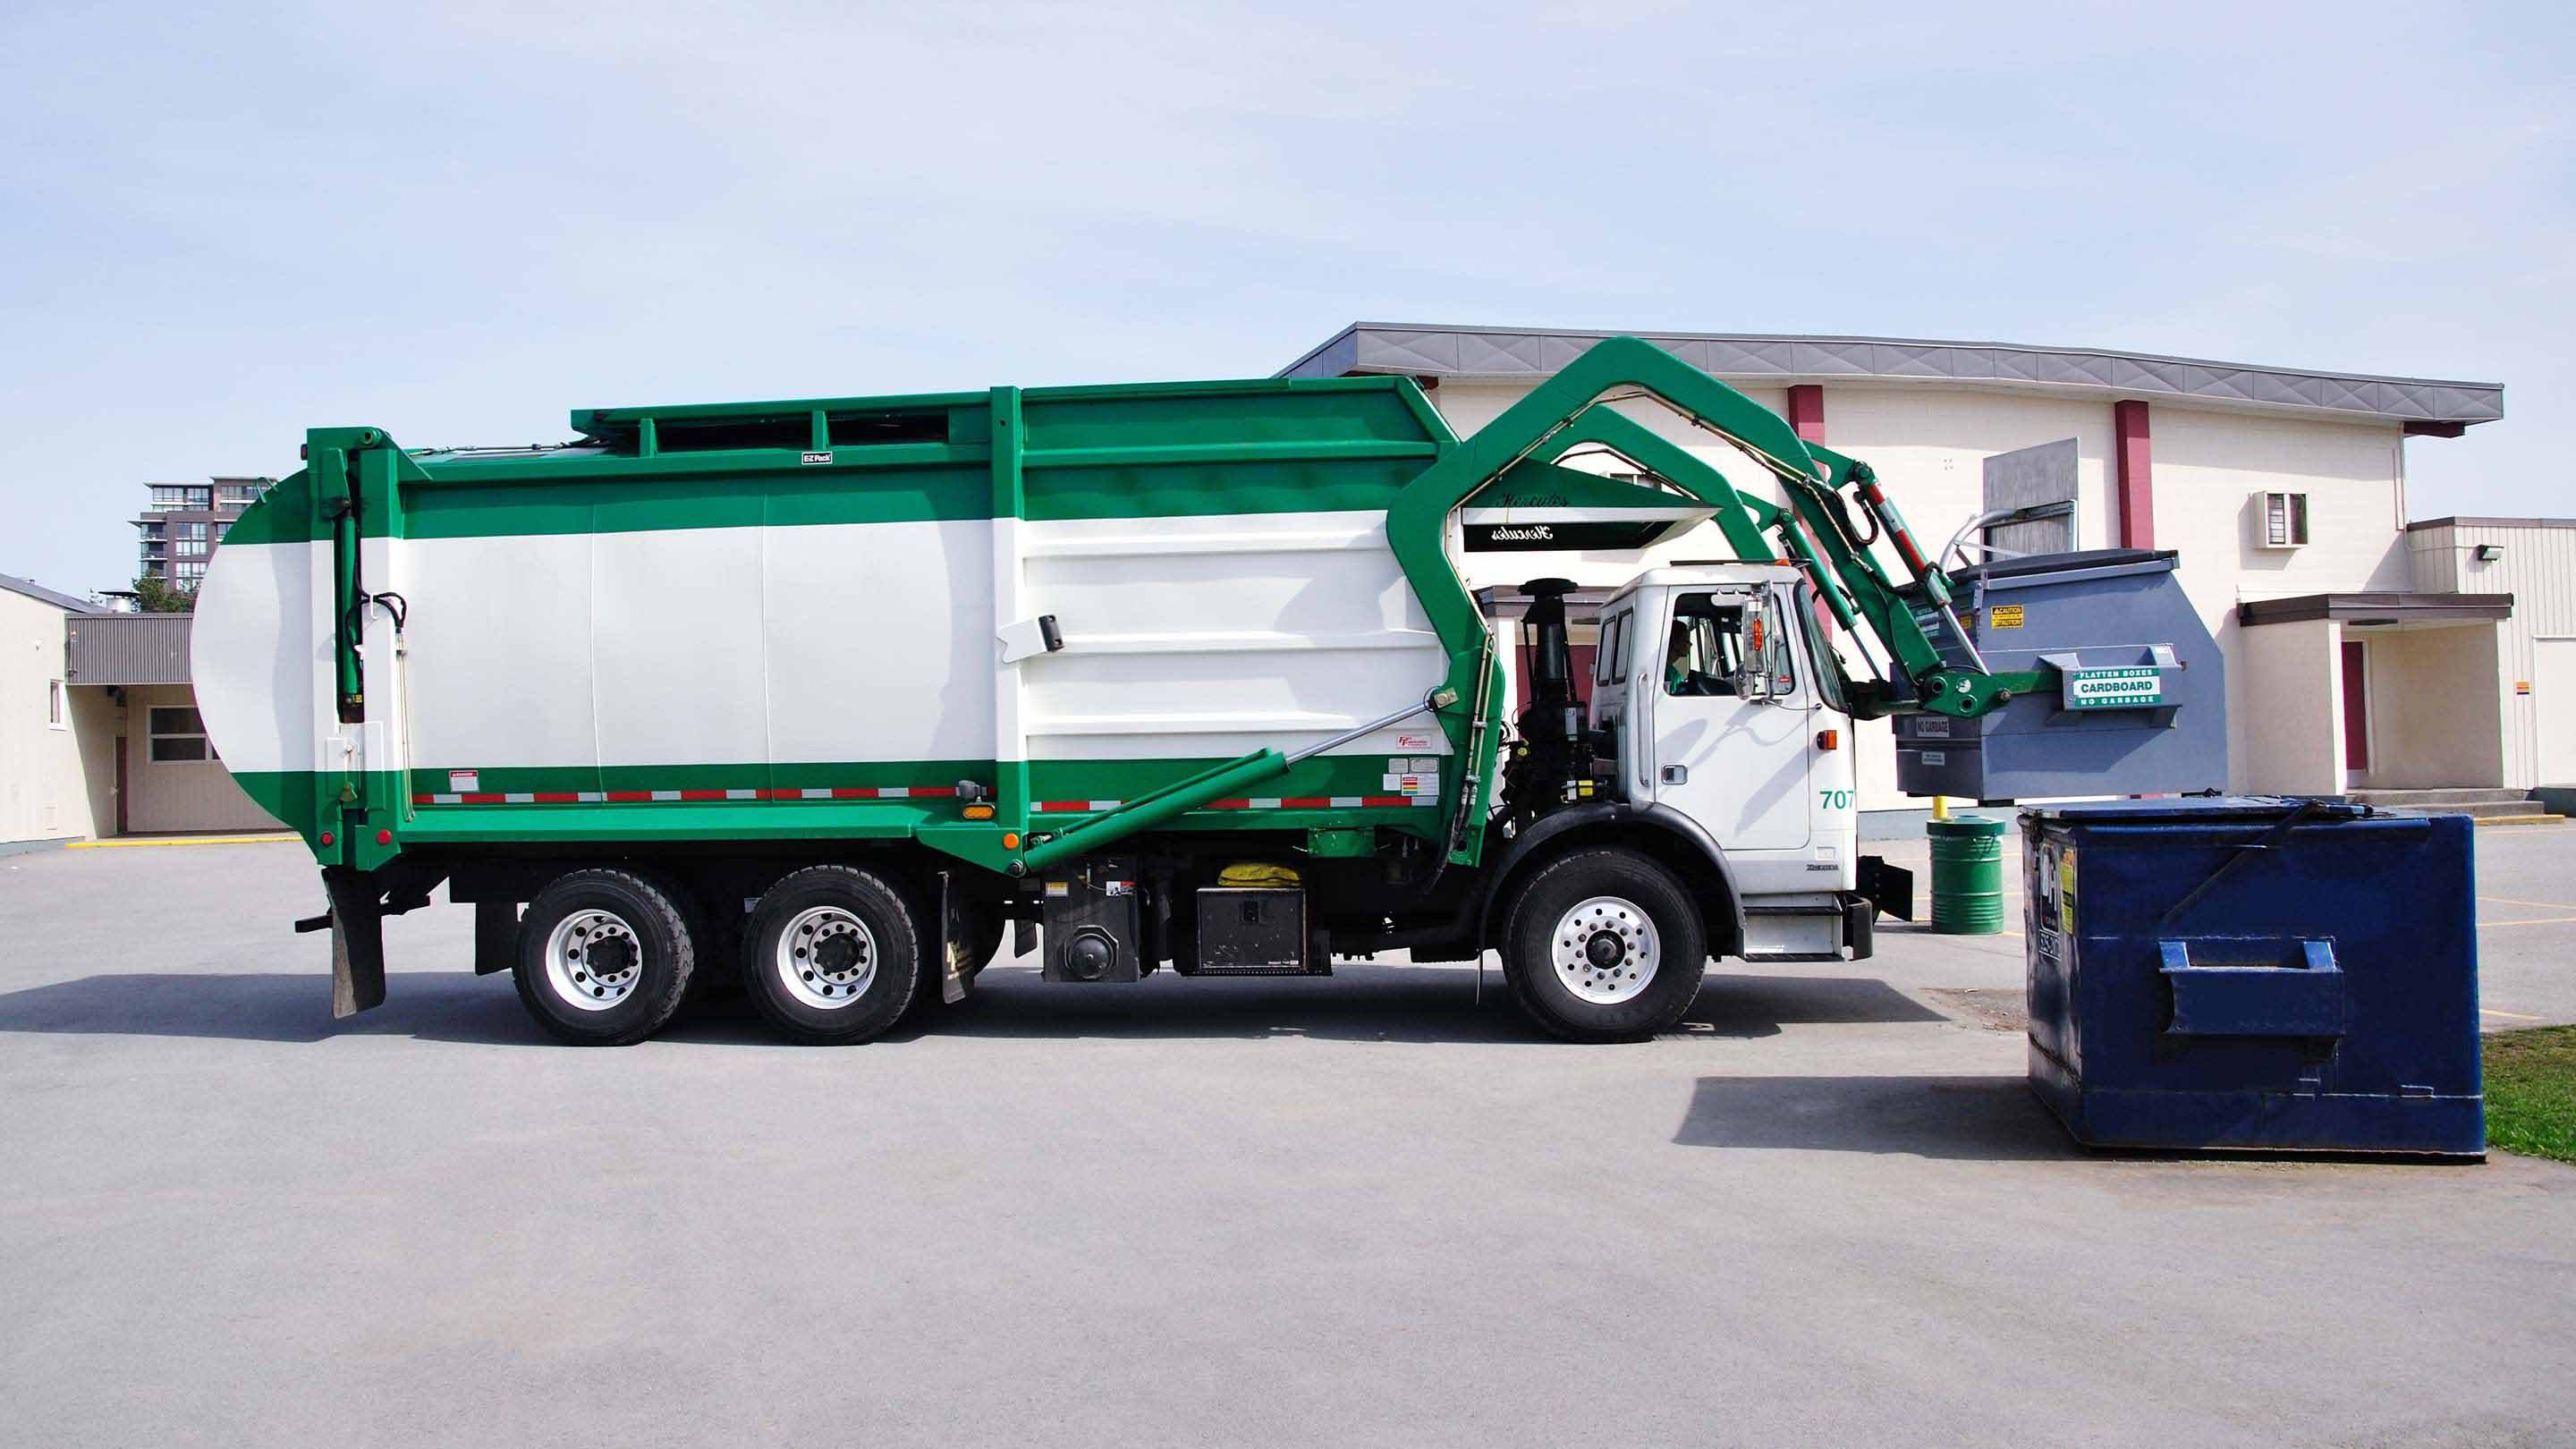 Green and white garbage truck lifting a blue dumpster